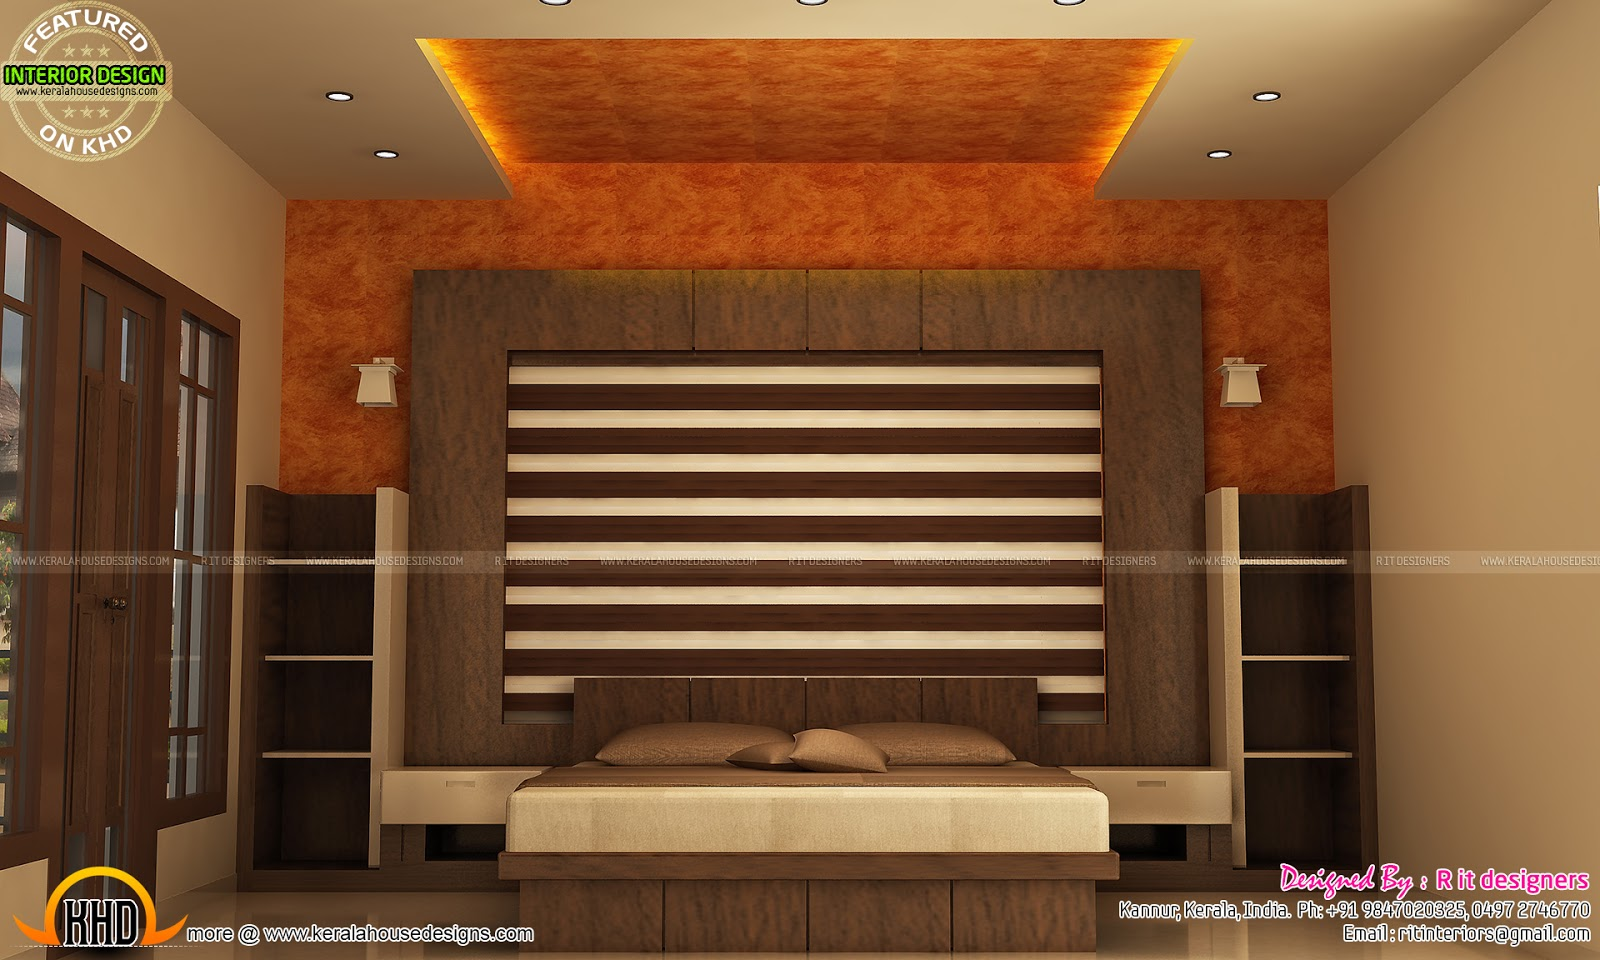 Modular kitchen bedroom teen bedroom and dining interior for Kerala interior designs